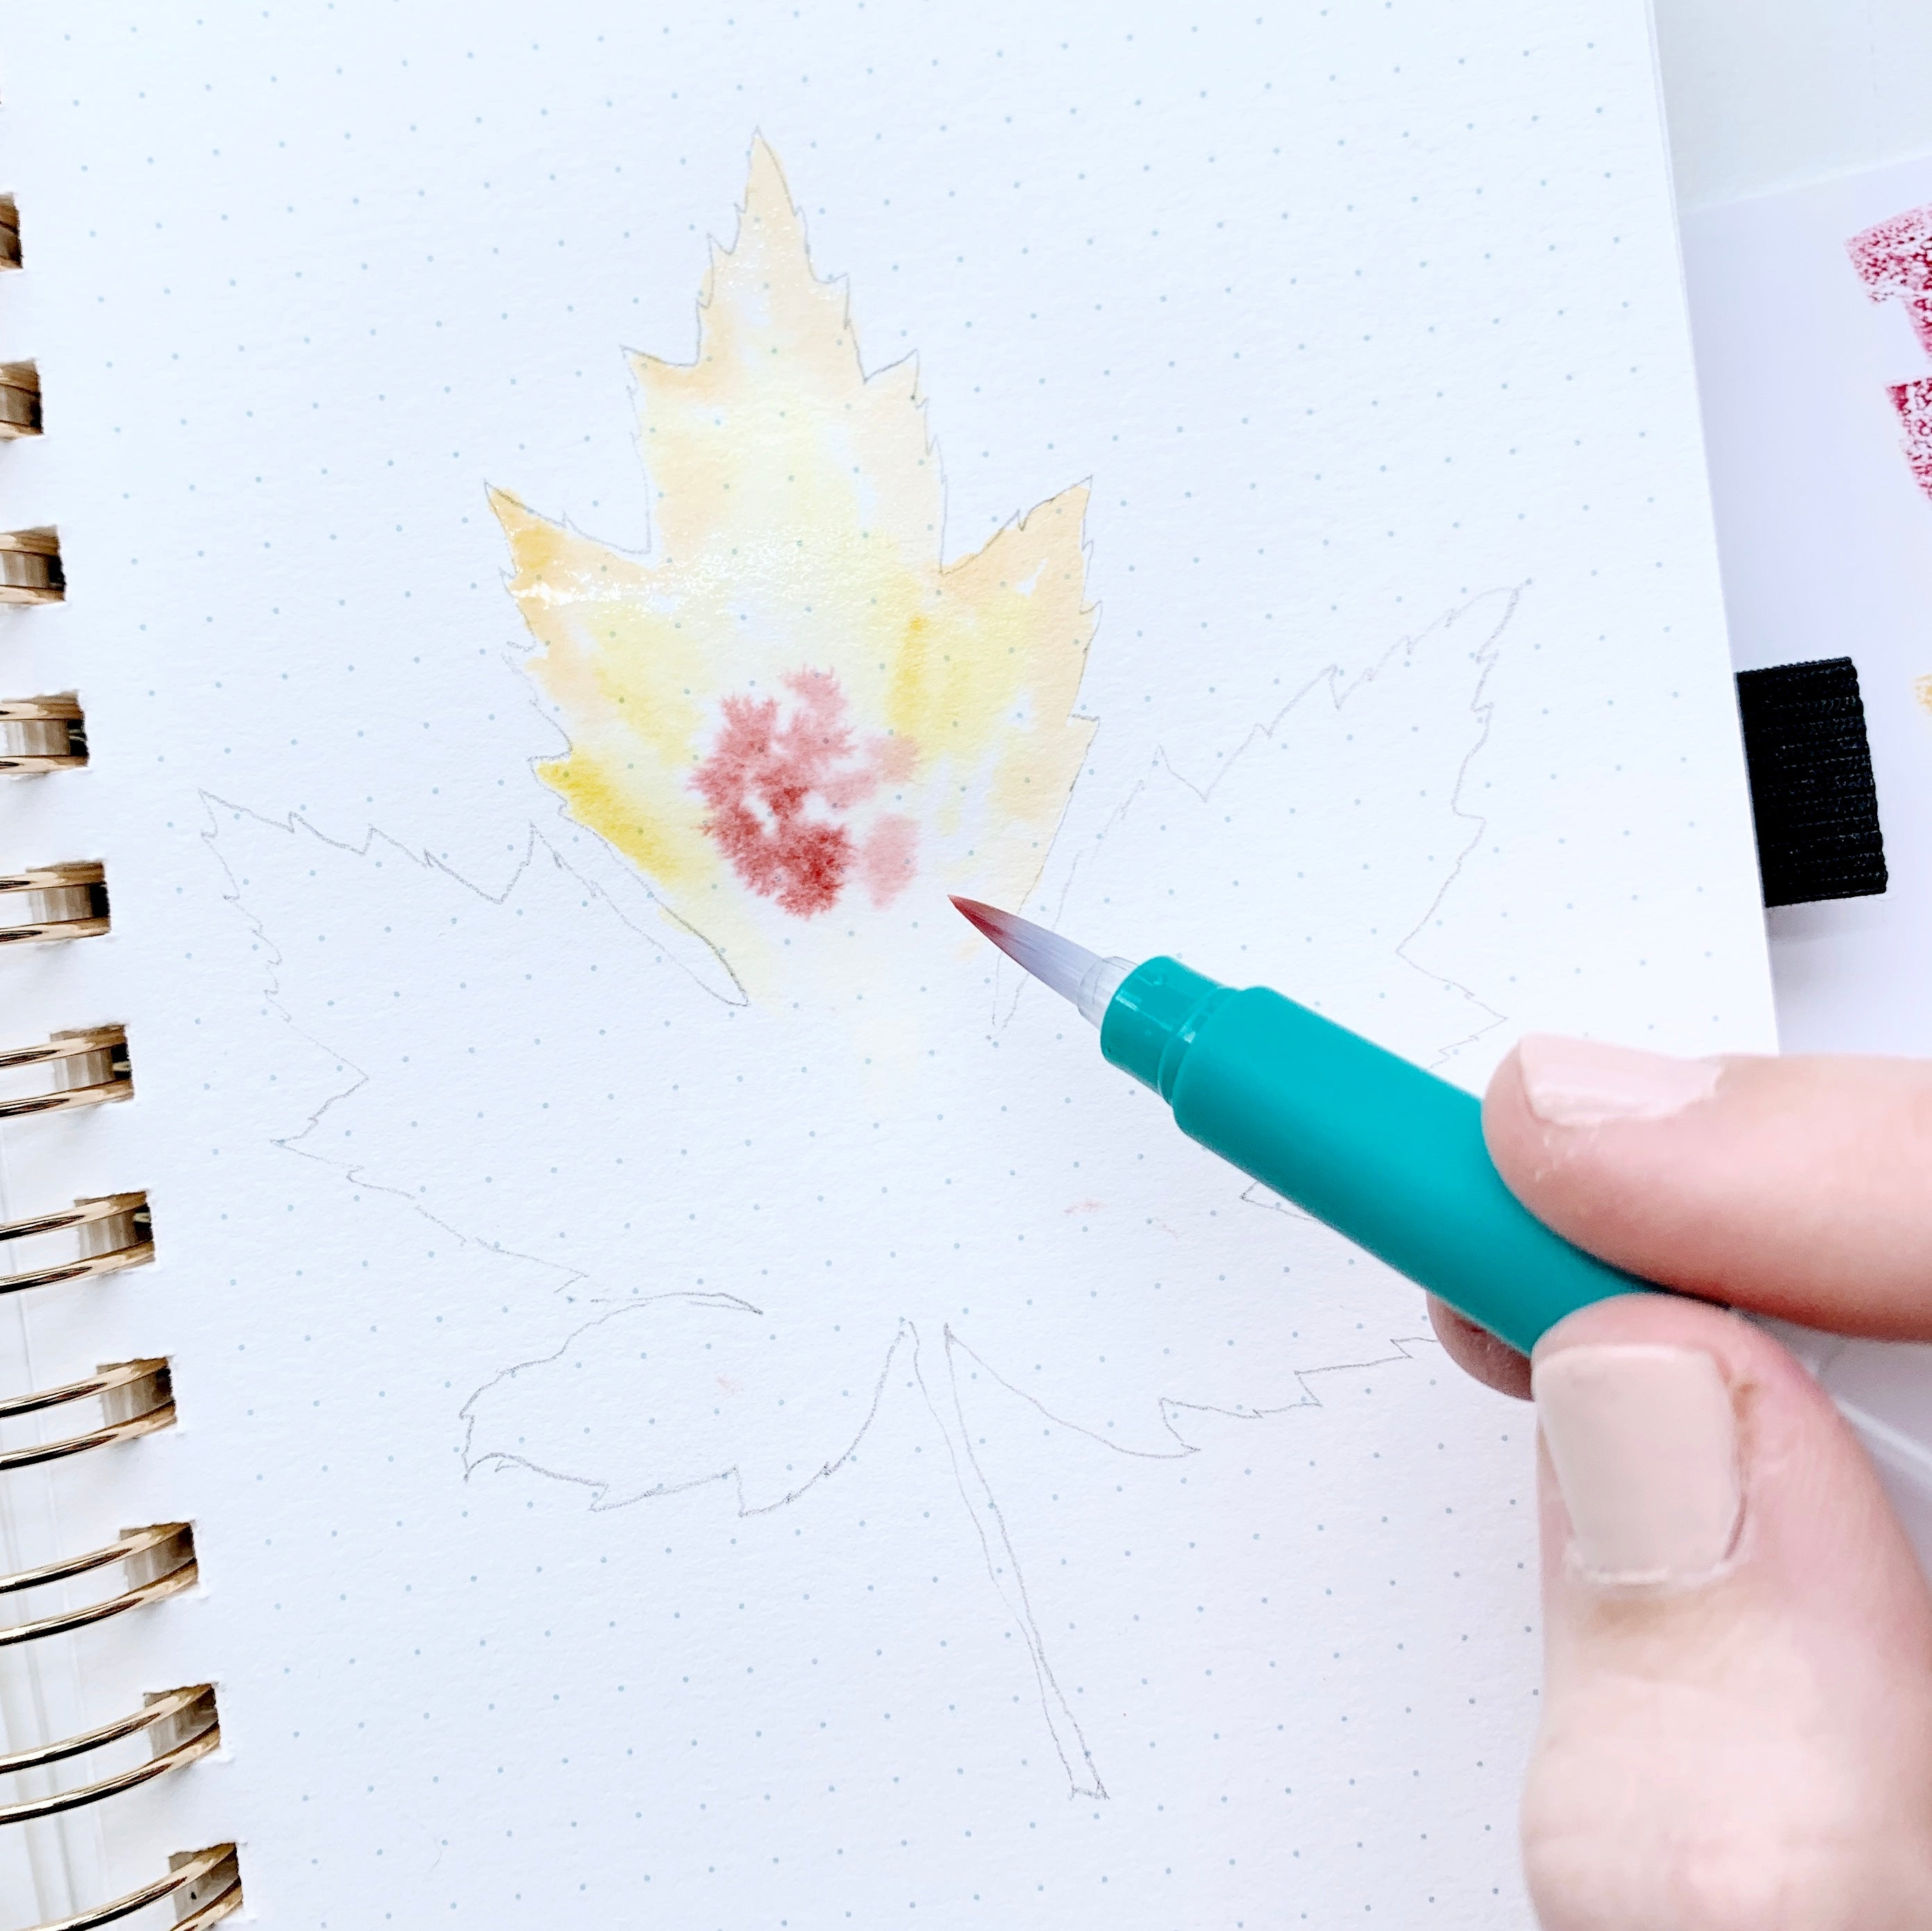 Learn how to create a fall leaf watercolor illustration with Adrienne from @studio80design!